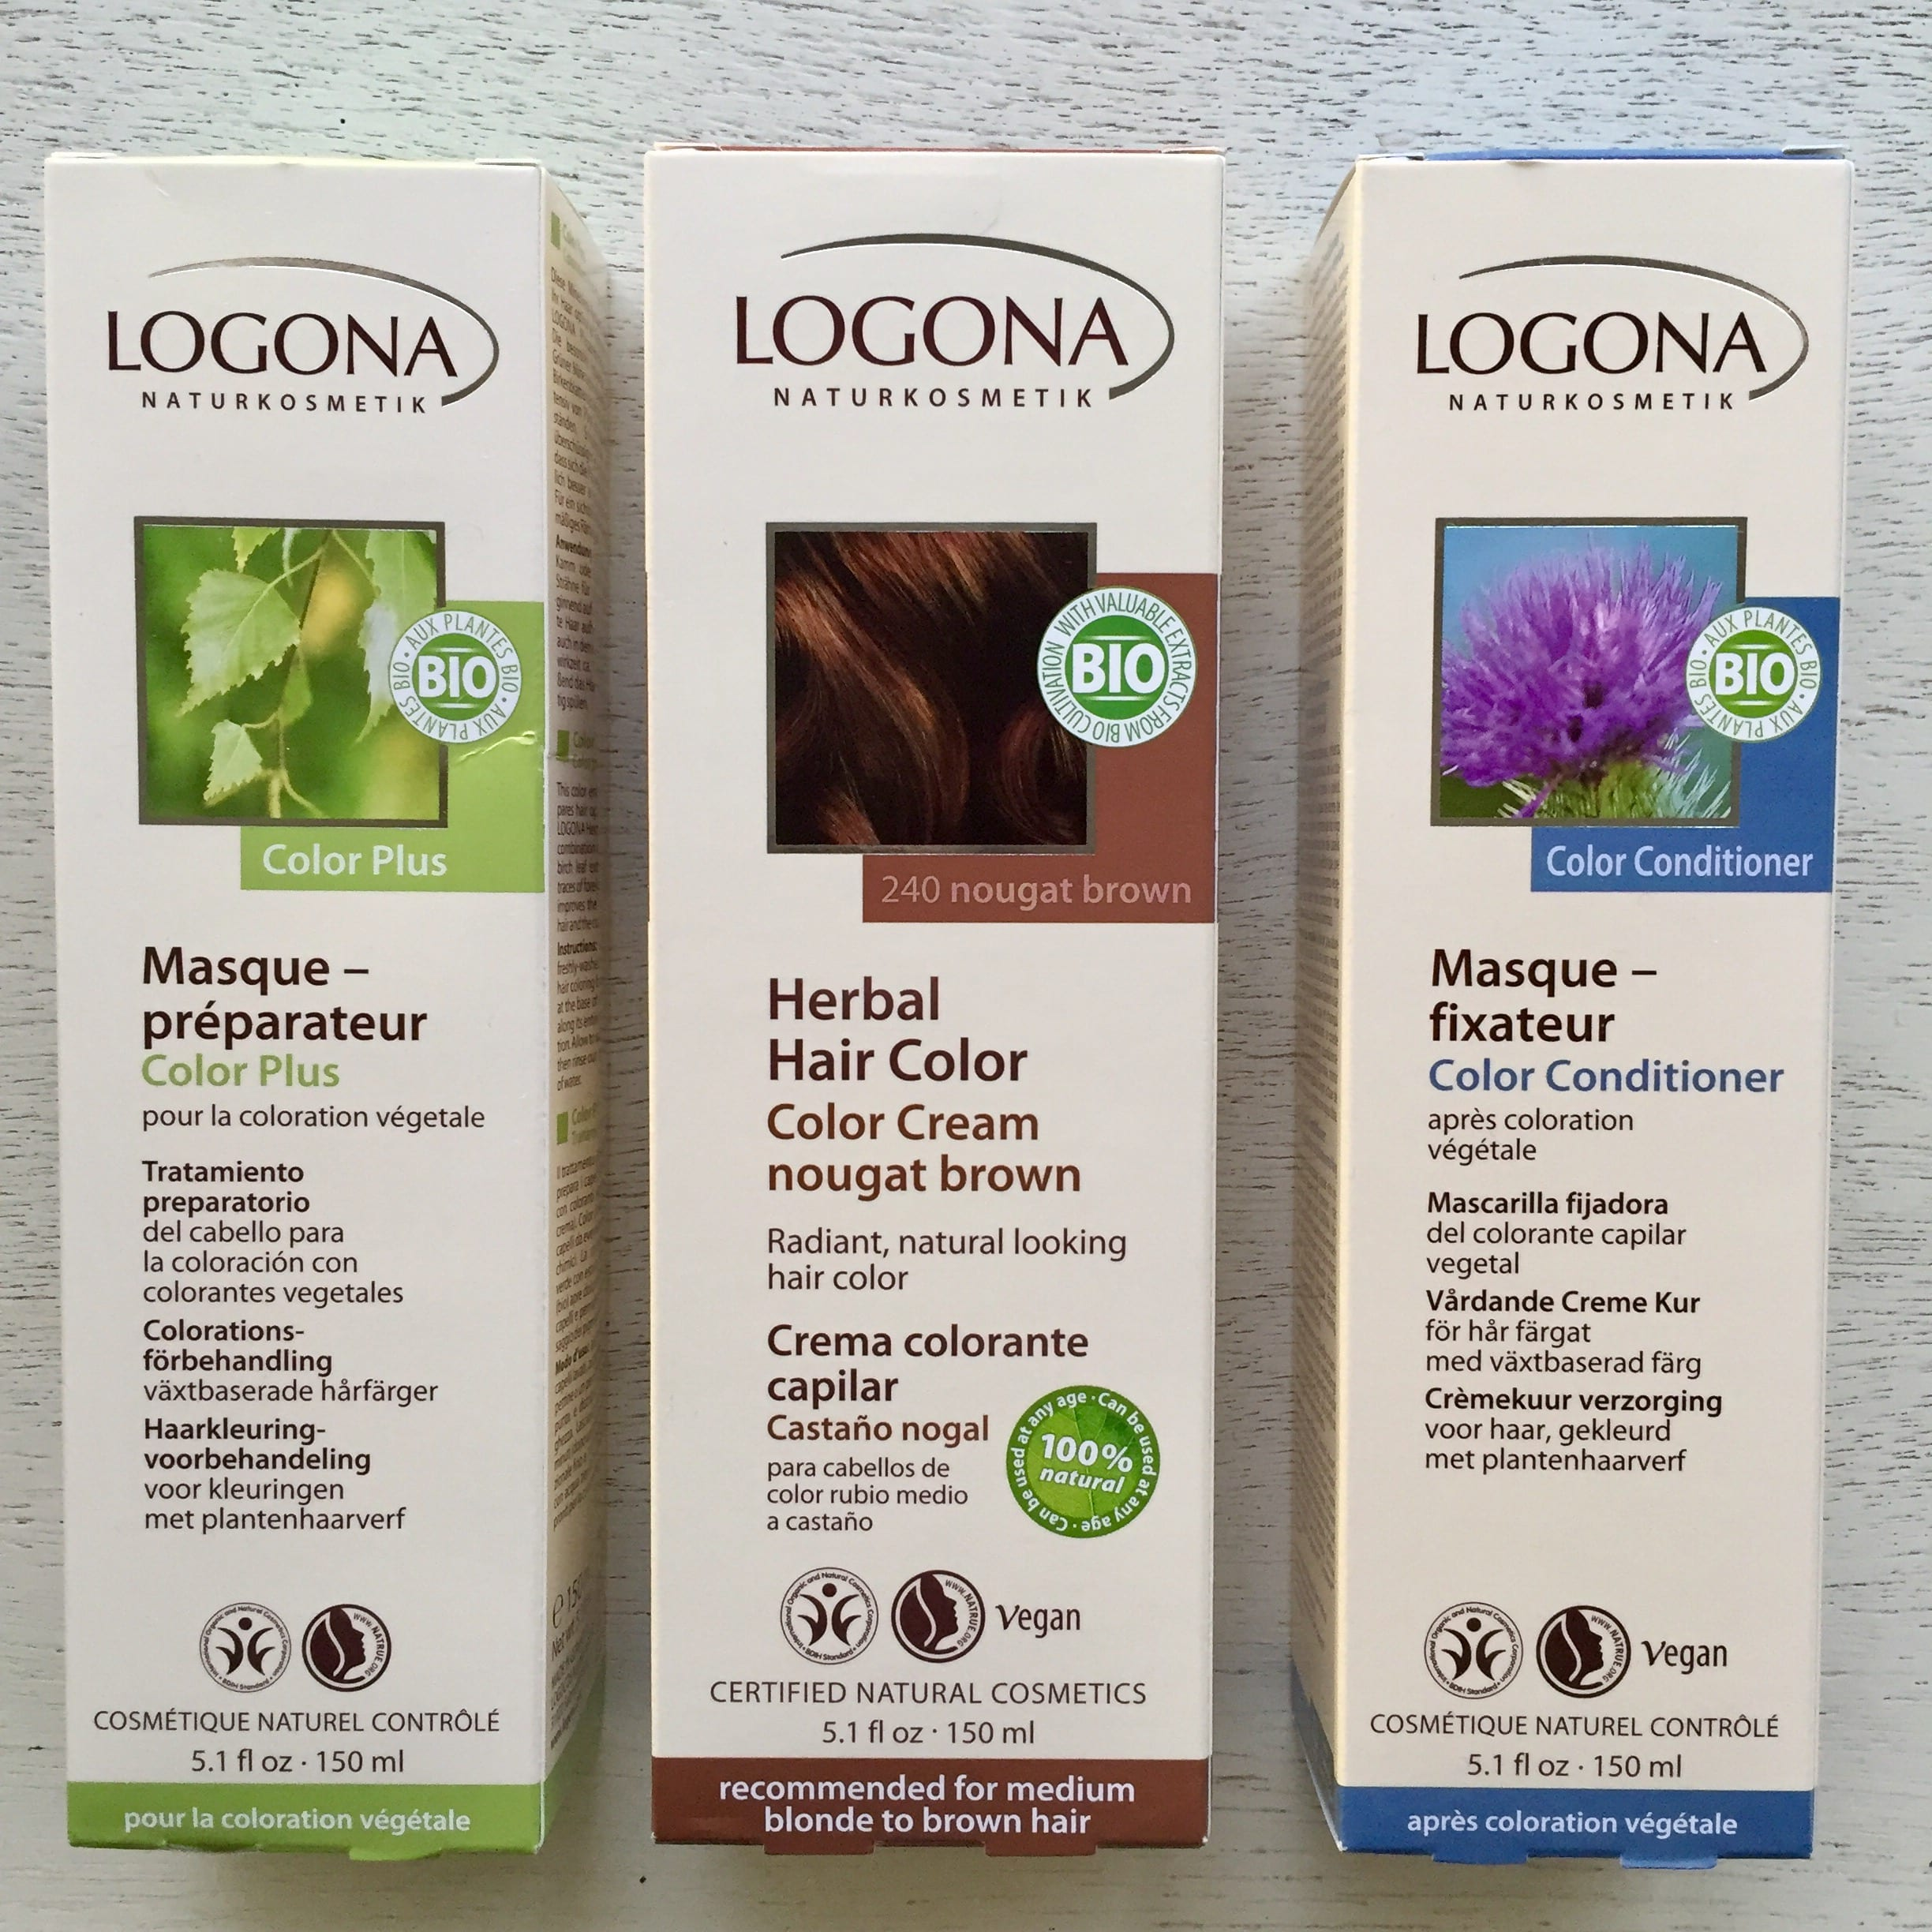 Logona Organic Hair Coloring